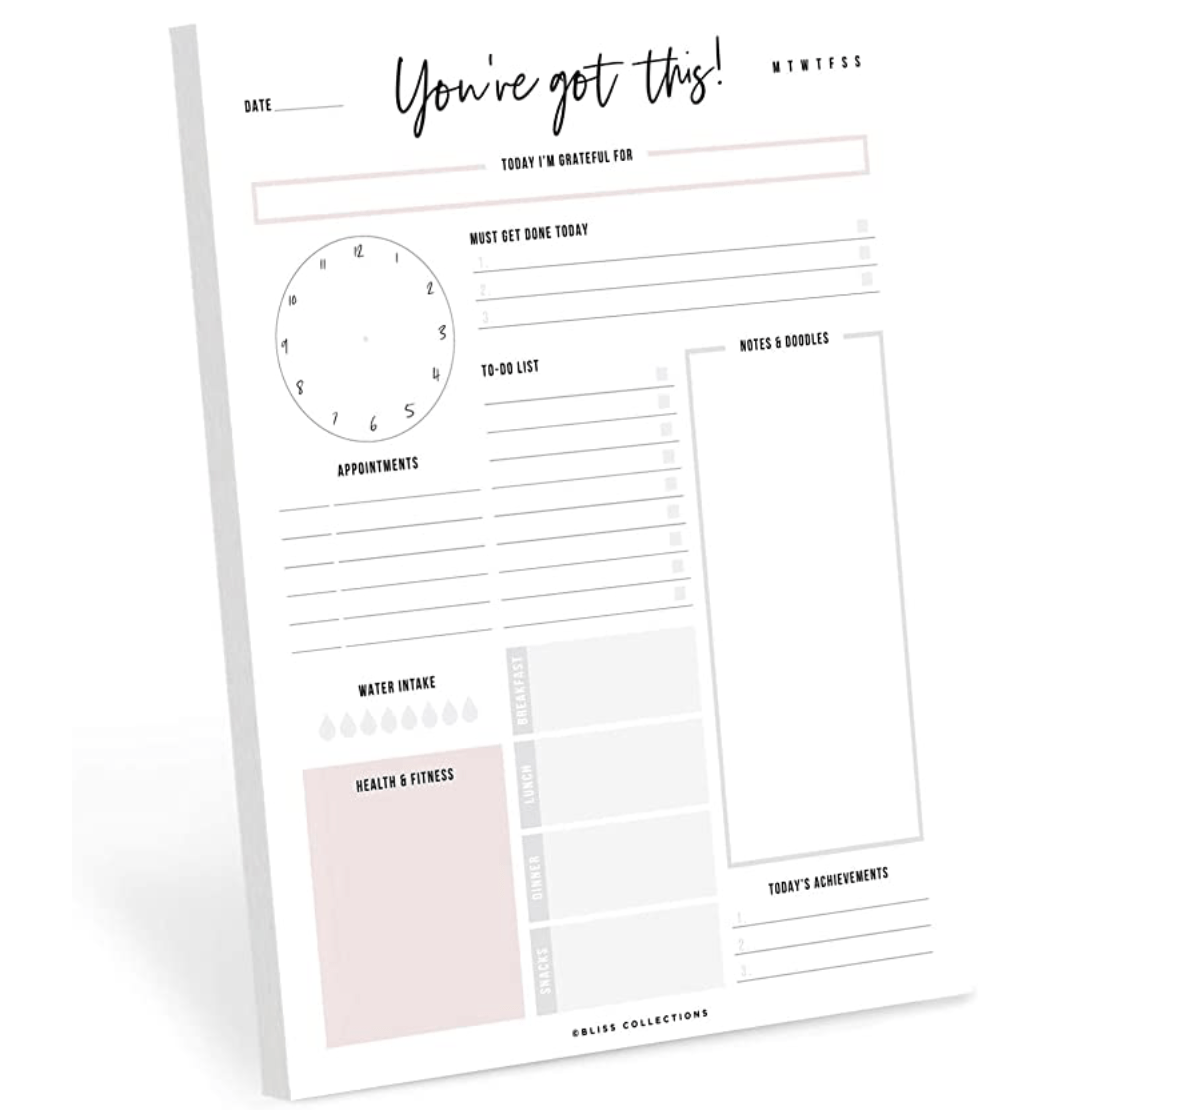 A daily tear-off planner that gives encouraging advice